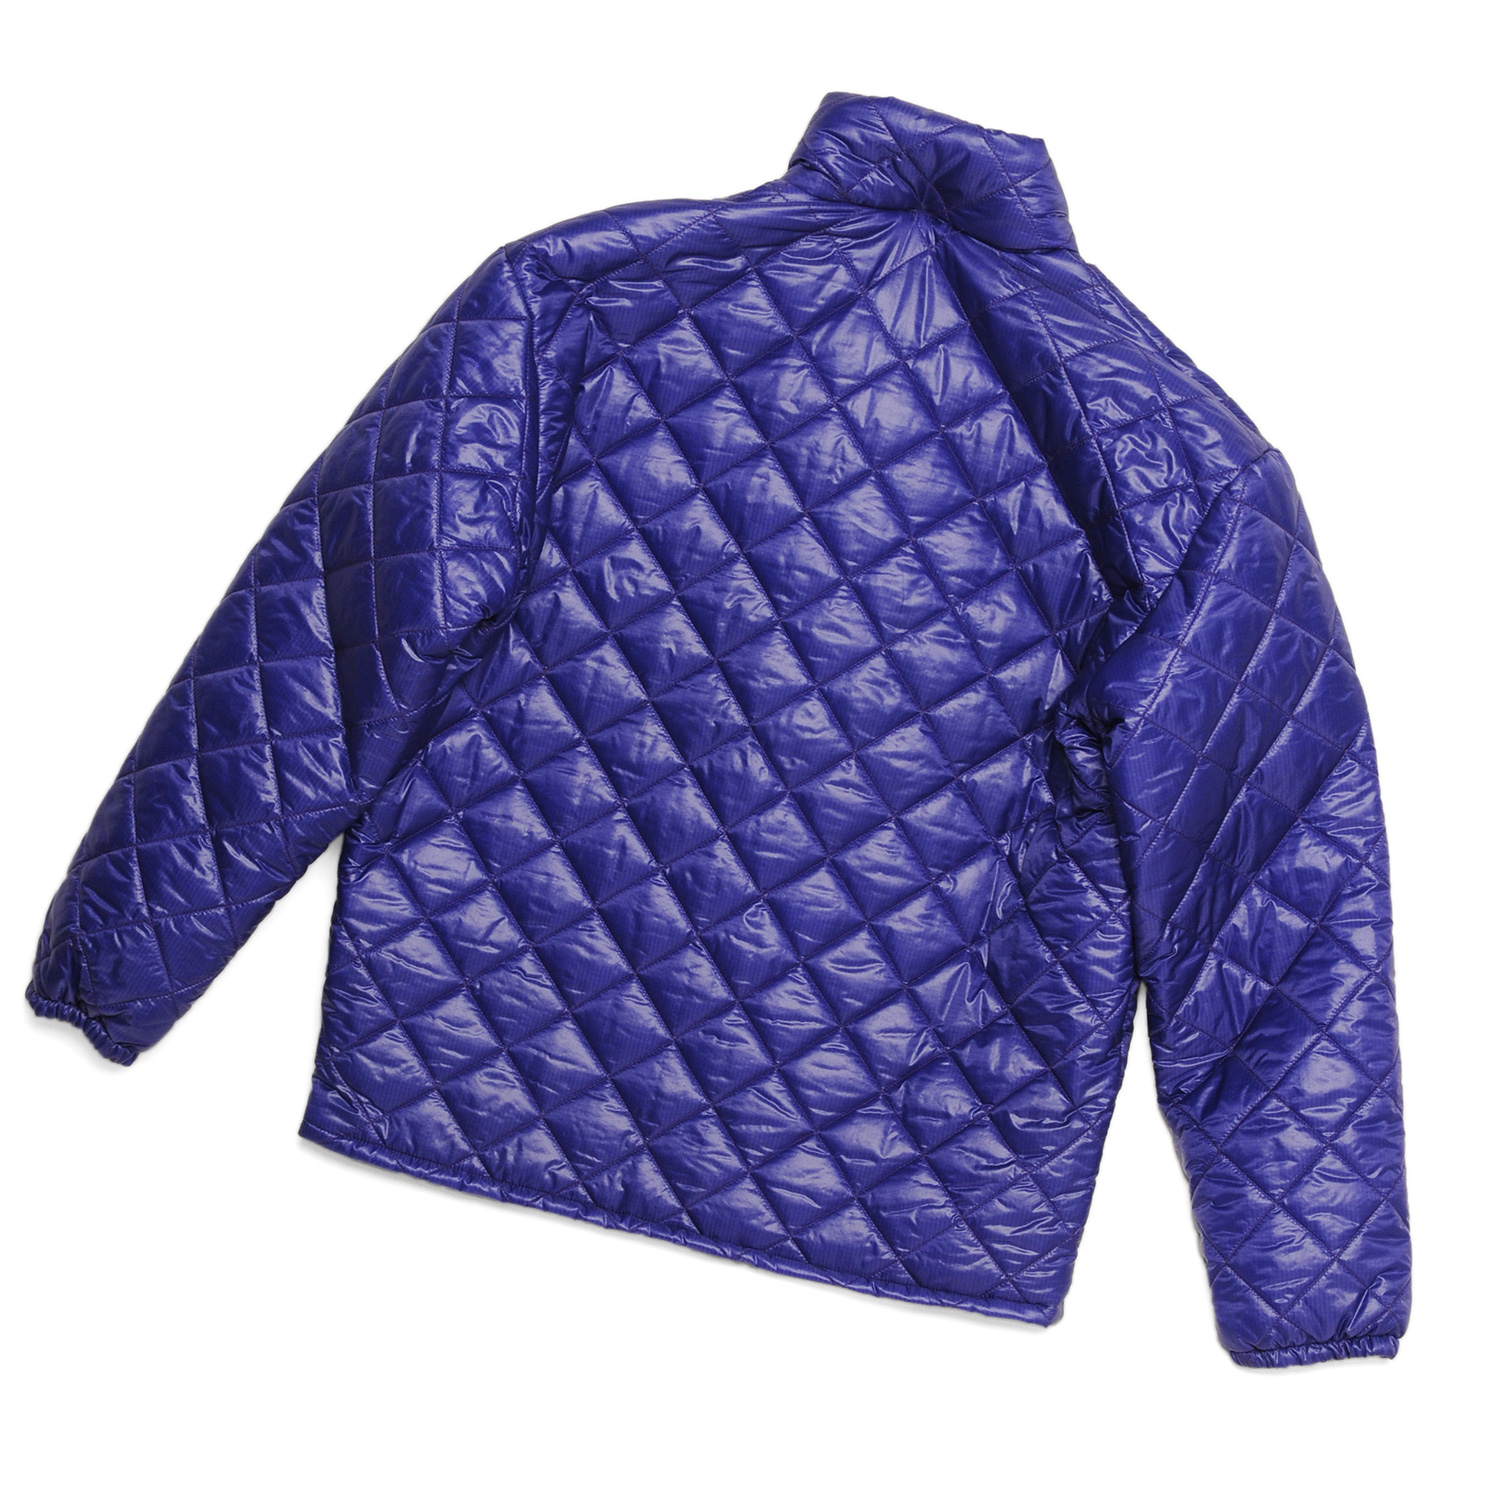 3.-QUILTED-JACKET,-PURPLE,-BACK.jpg